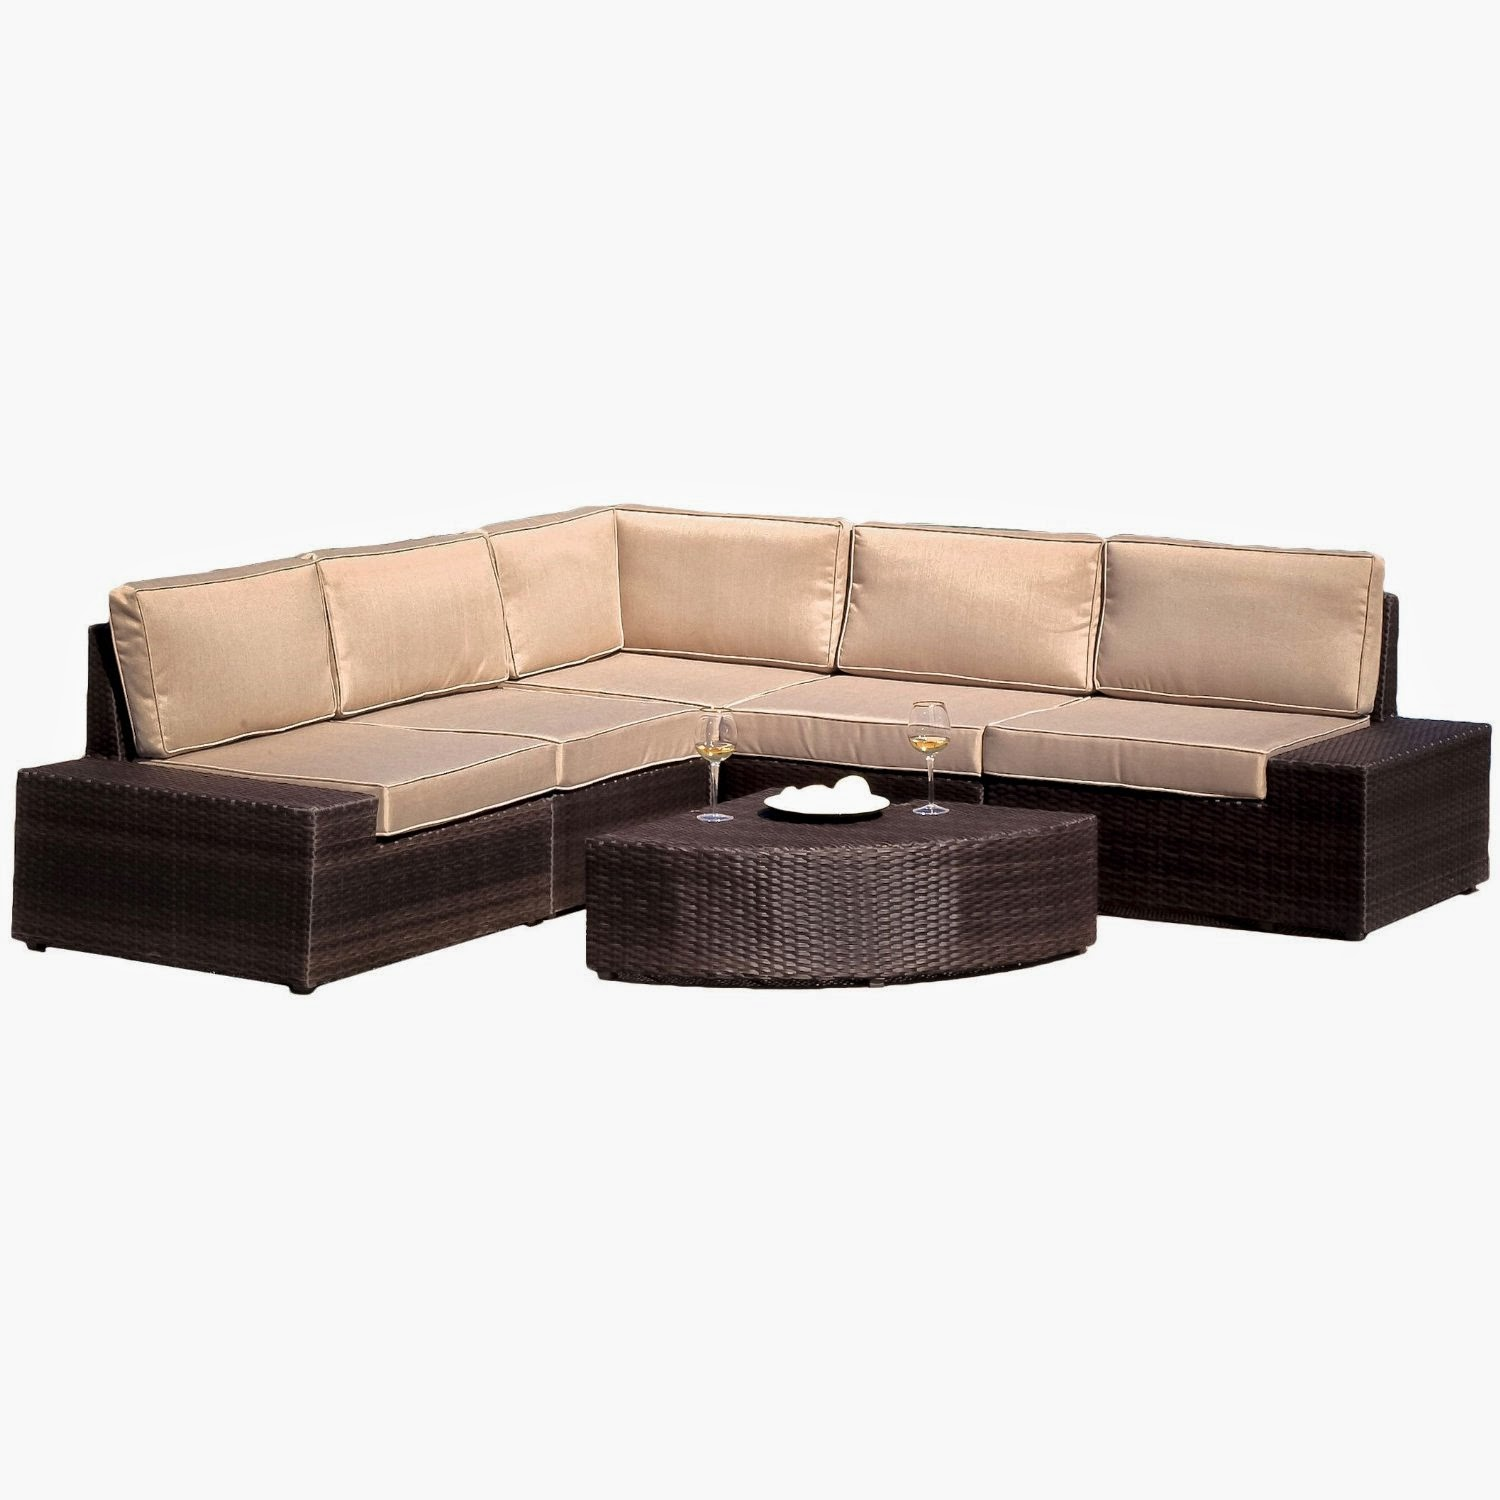 Sofas For Sell American Made Sofa Sleepers Best Selling Say Brook Pe Wicker Set Outdoor Patio